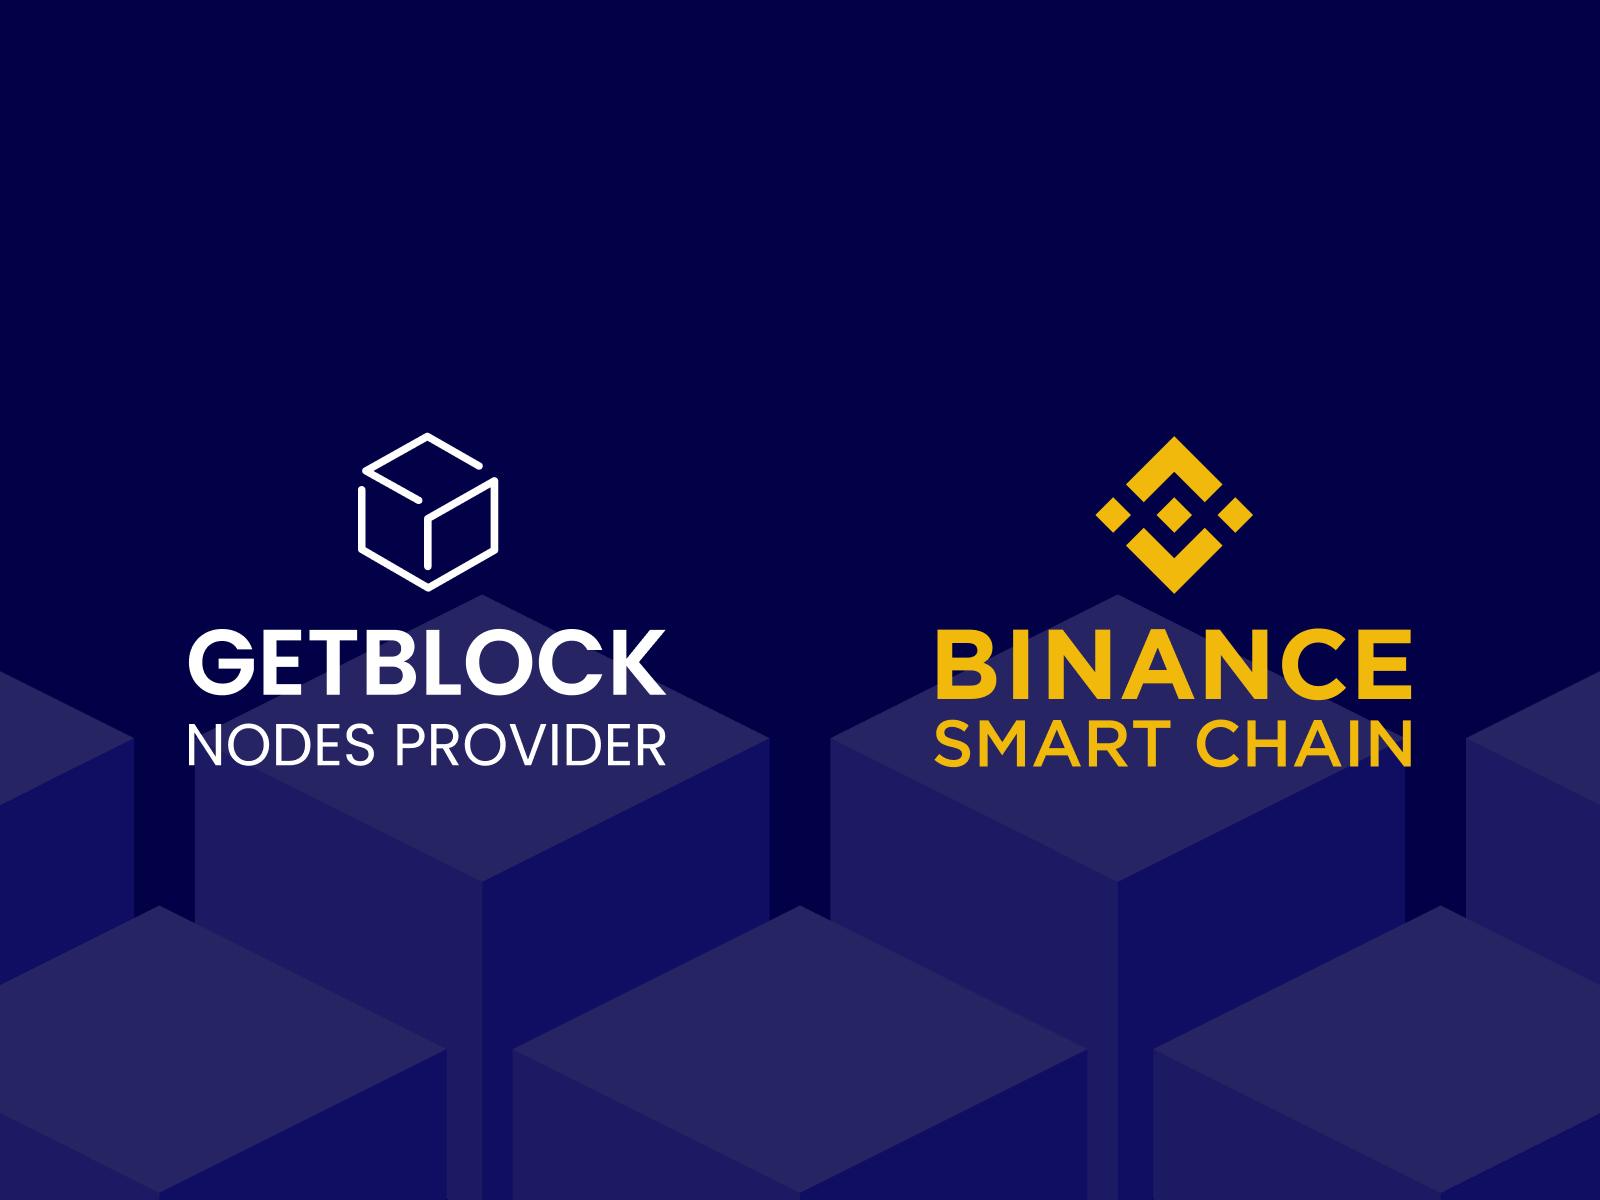 Blockchain Nodes Provider GetBlock Adds Support to Binance Smart Chain